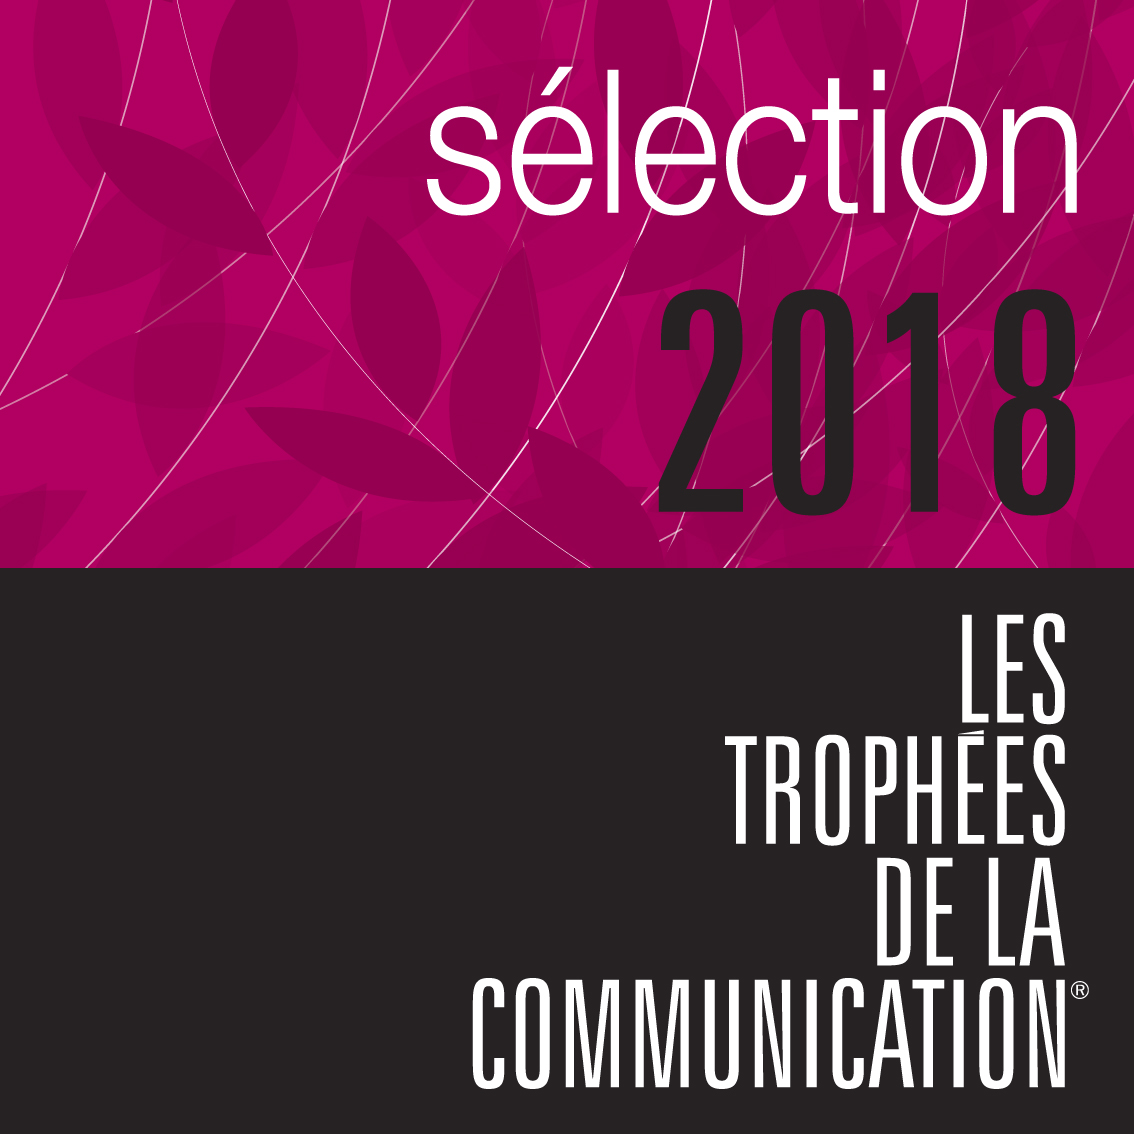 SELECTION 2018